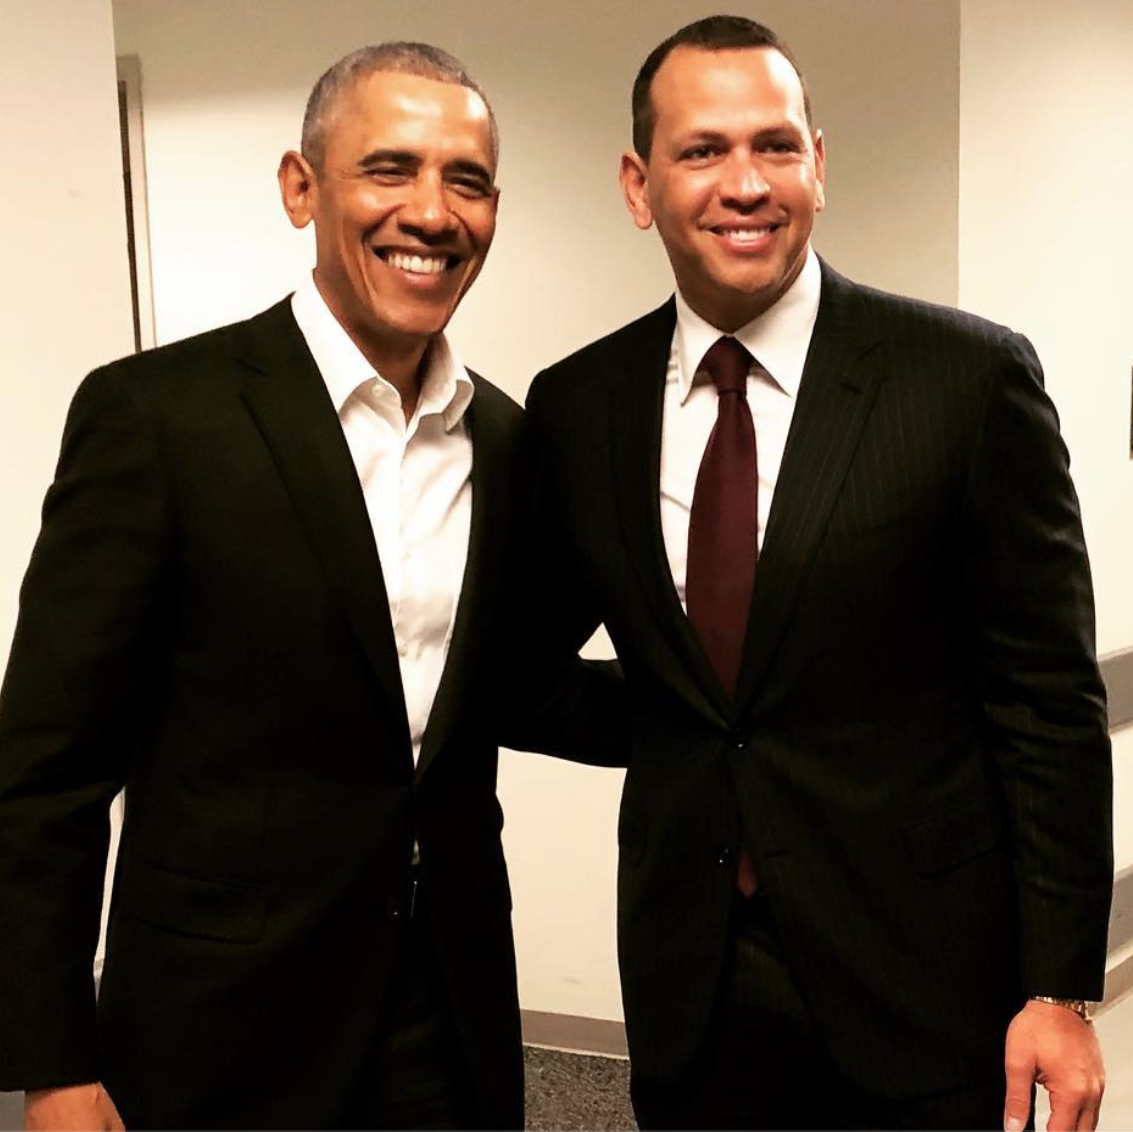 Obama Sent A-Rod and J-Lo a Note to Congratulate Them on Their Engagement